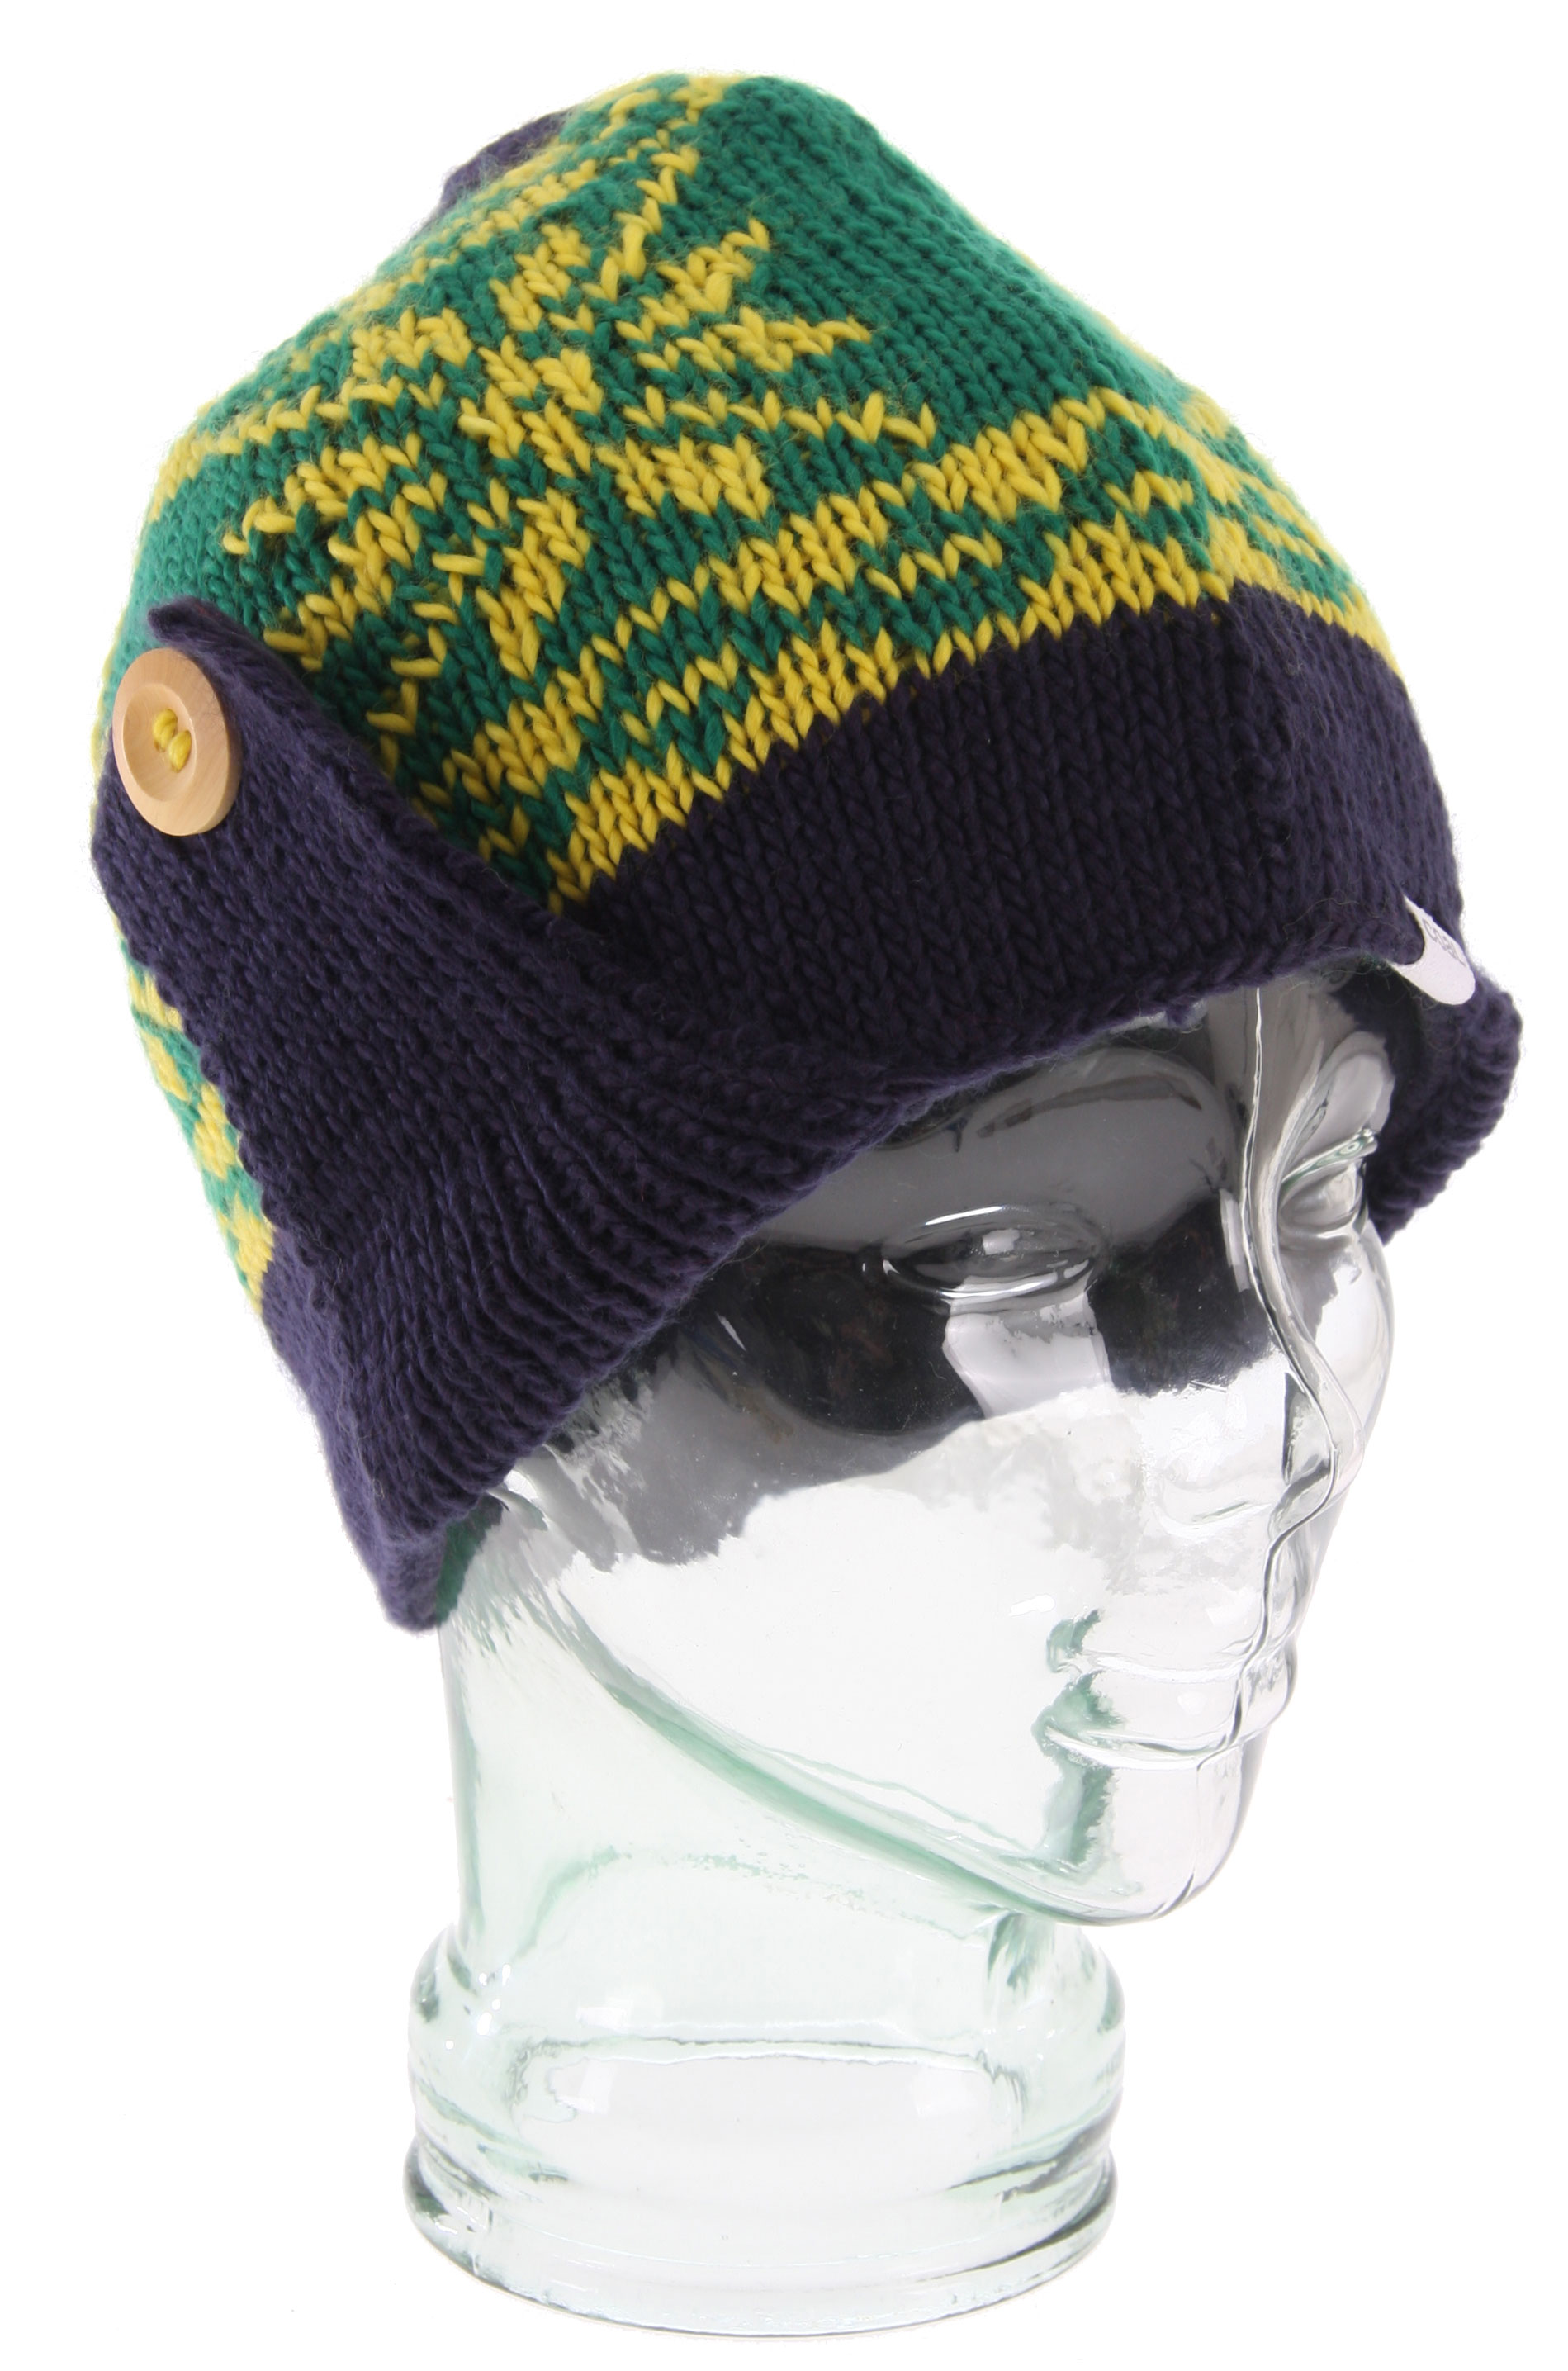 Guns and Military Key Features of the Coal Mckenzie Flap Beanie: A unique chunky hand knit earflap beanie. Wear the flaps buttoned up, or down with the adjustable button detail. Full fleece headband for ultimate warmth. Silky Acrylic. - $19.57